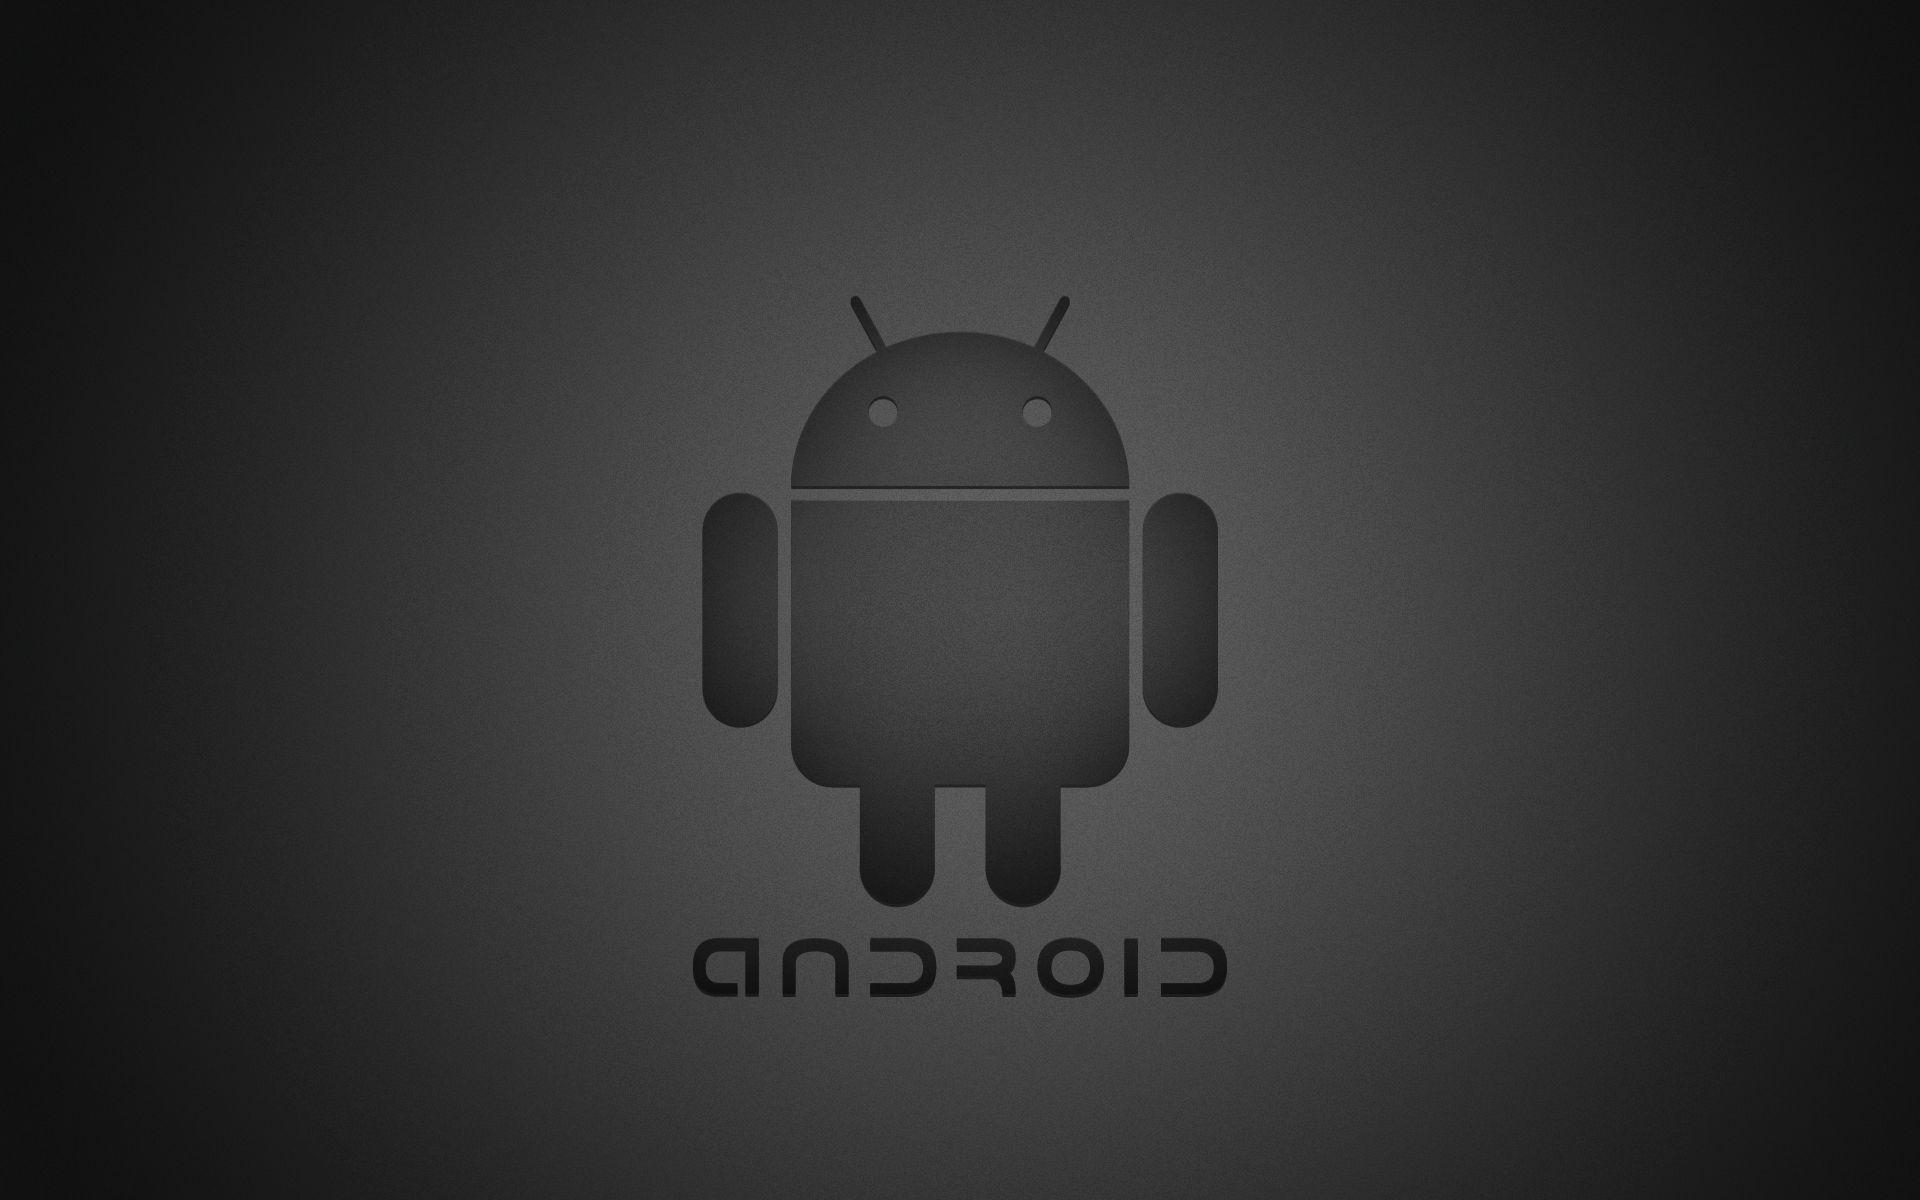 Android Full HD Wallpapers and Backgrounds Image